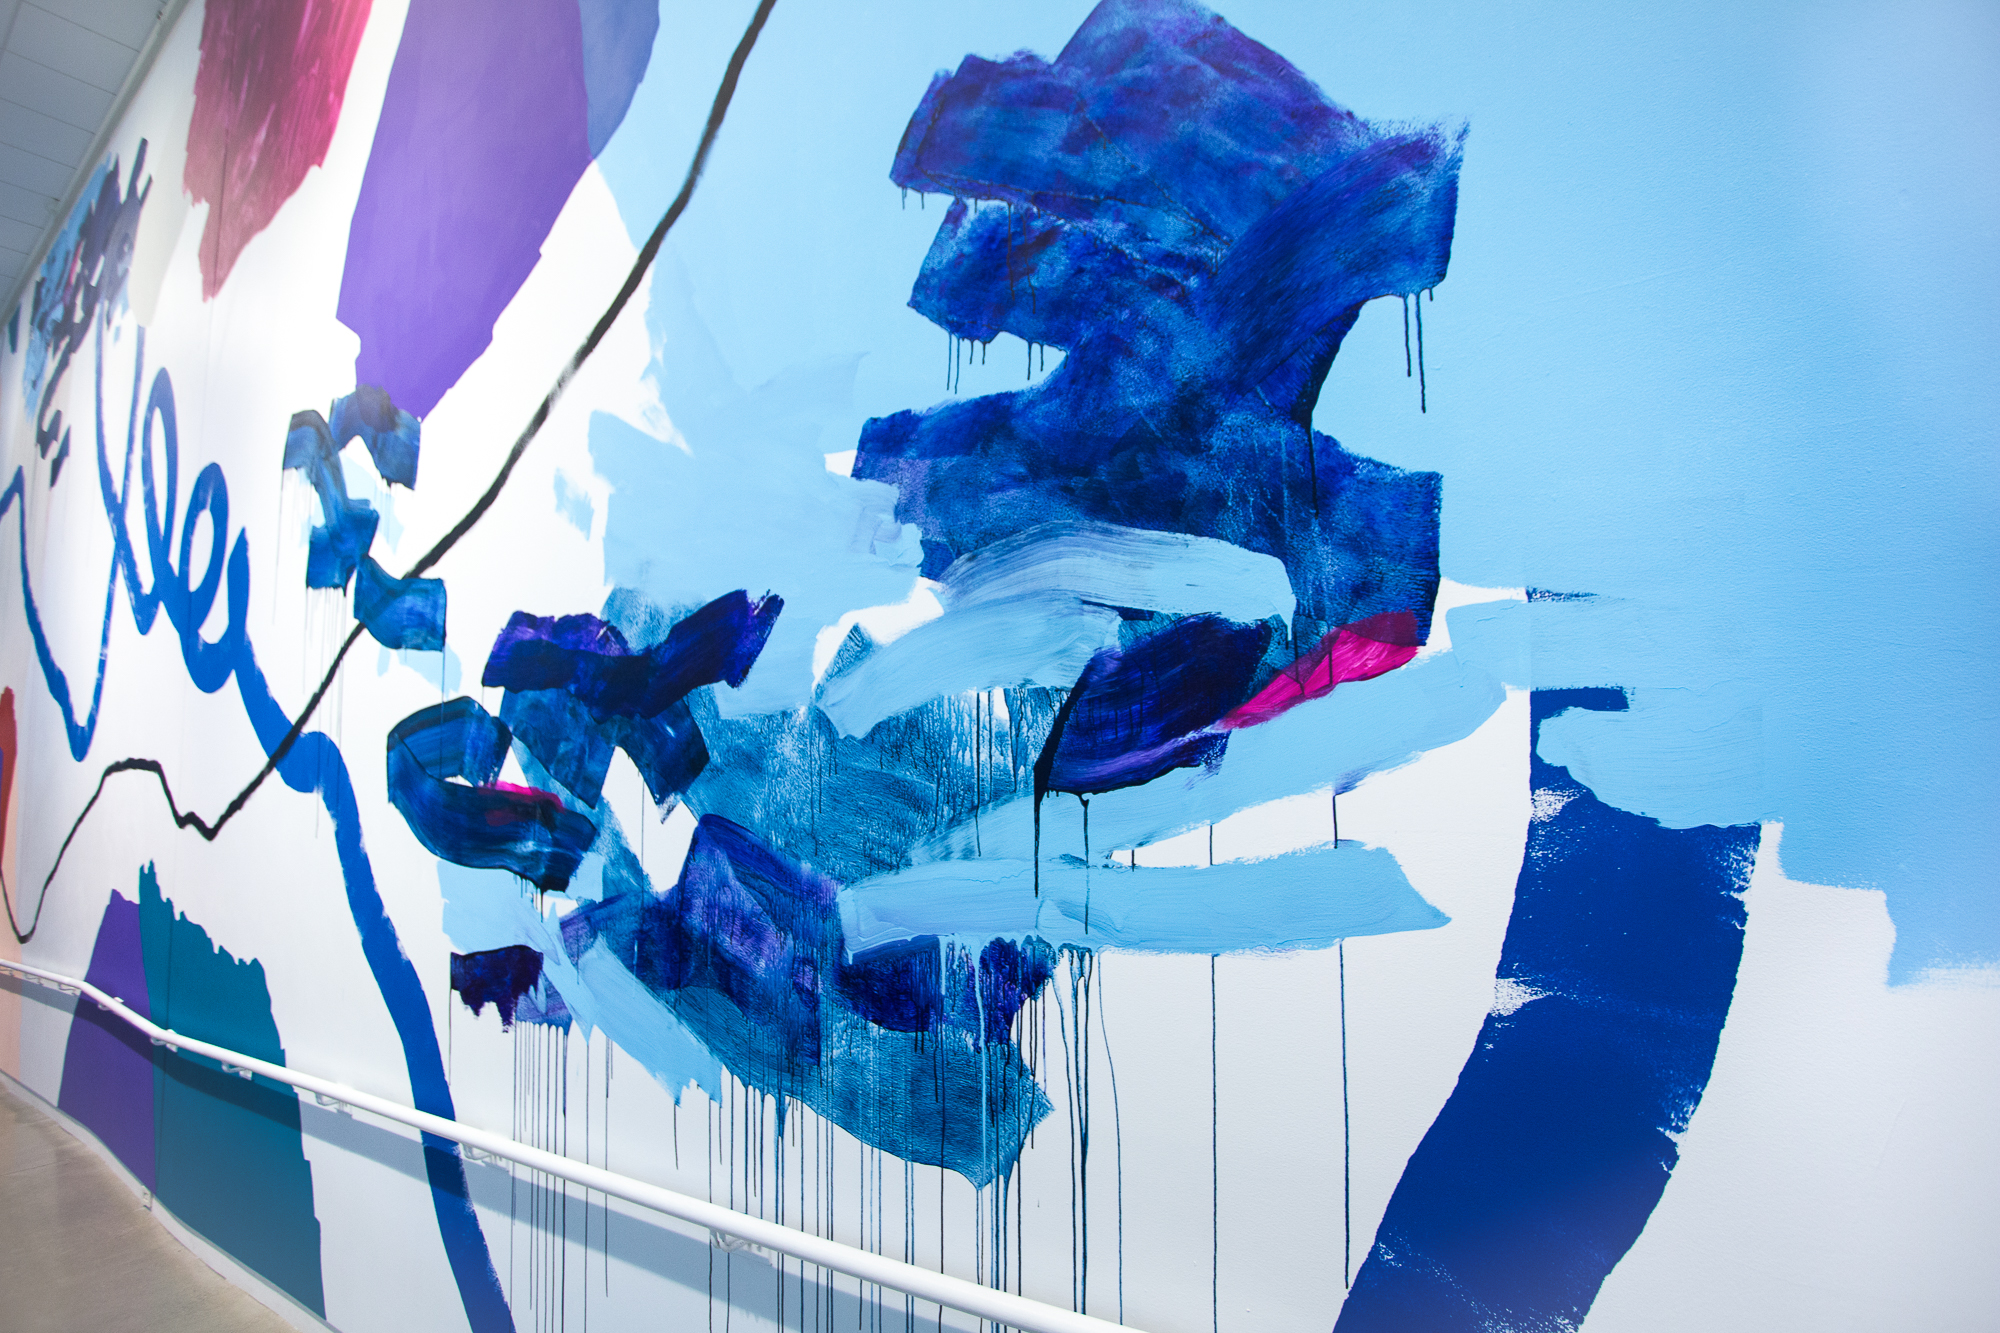 Heather Day's mural celebrating Pantone Color of the Year - Ultraviolet